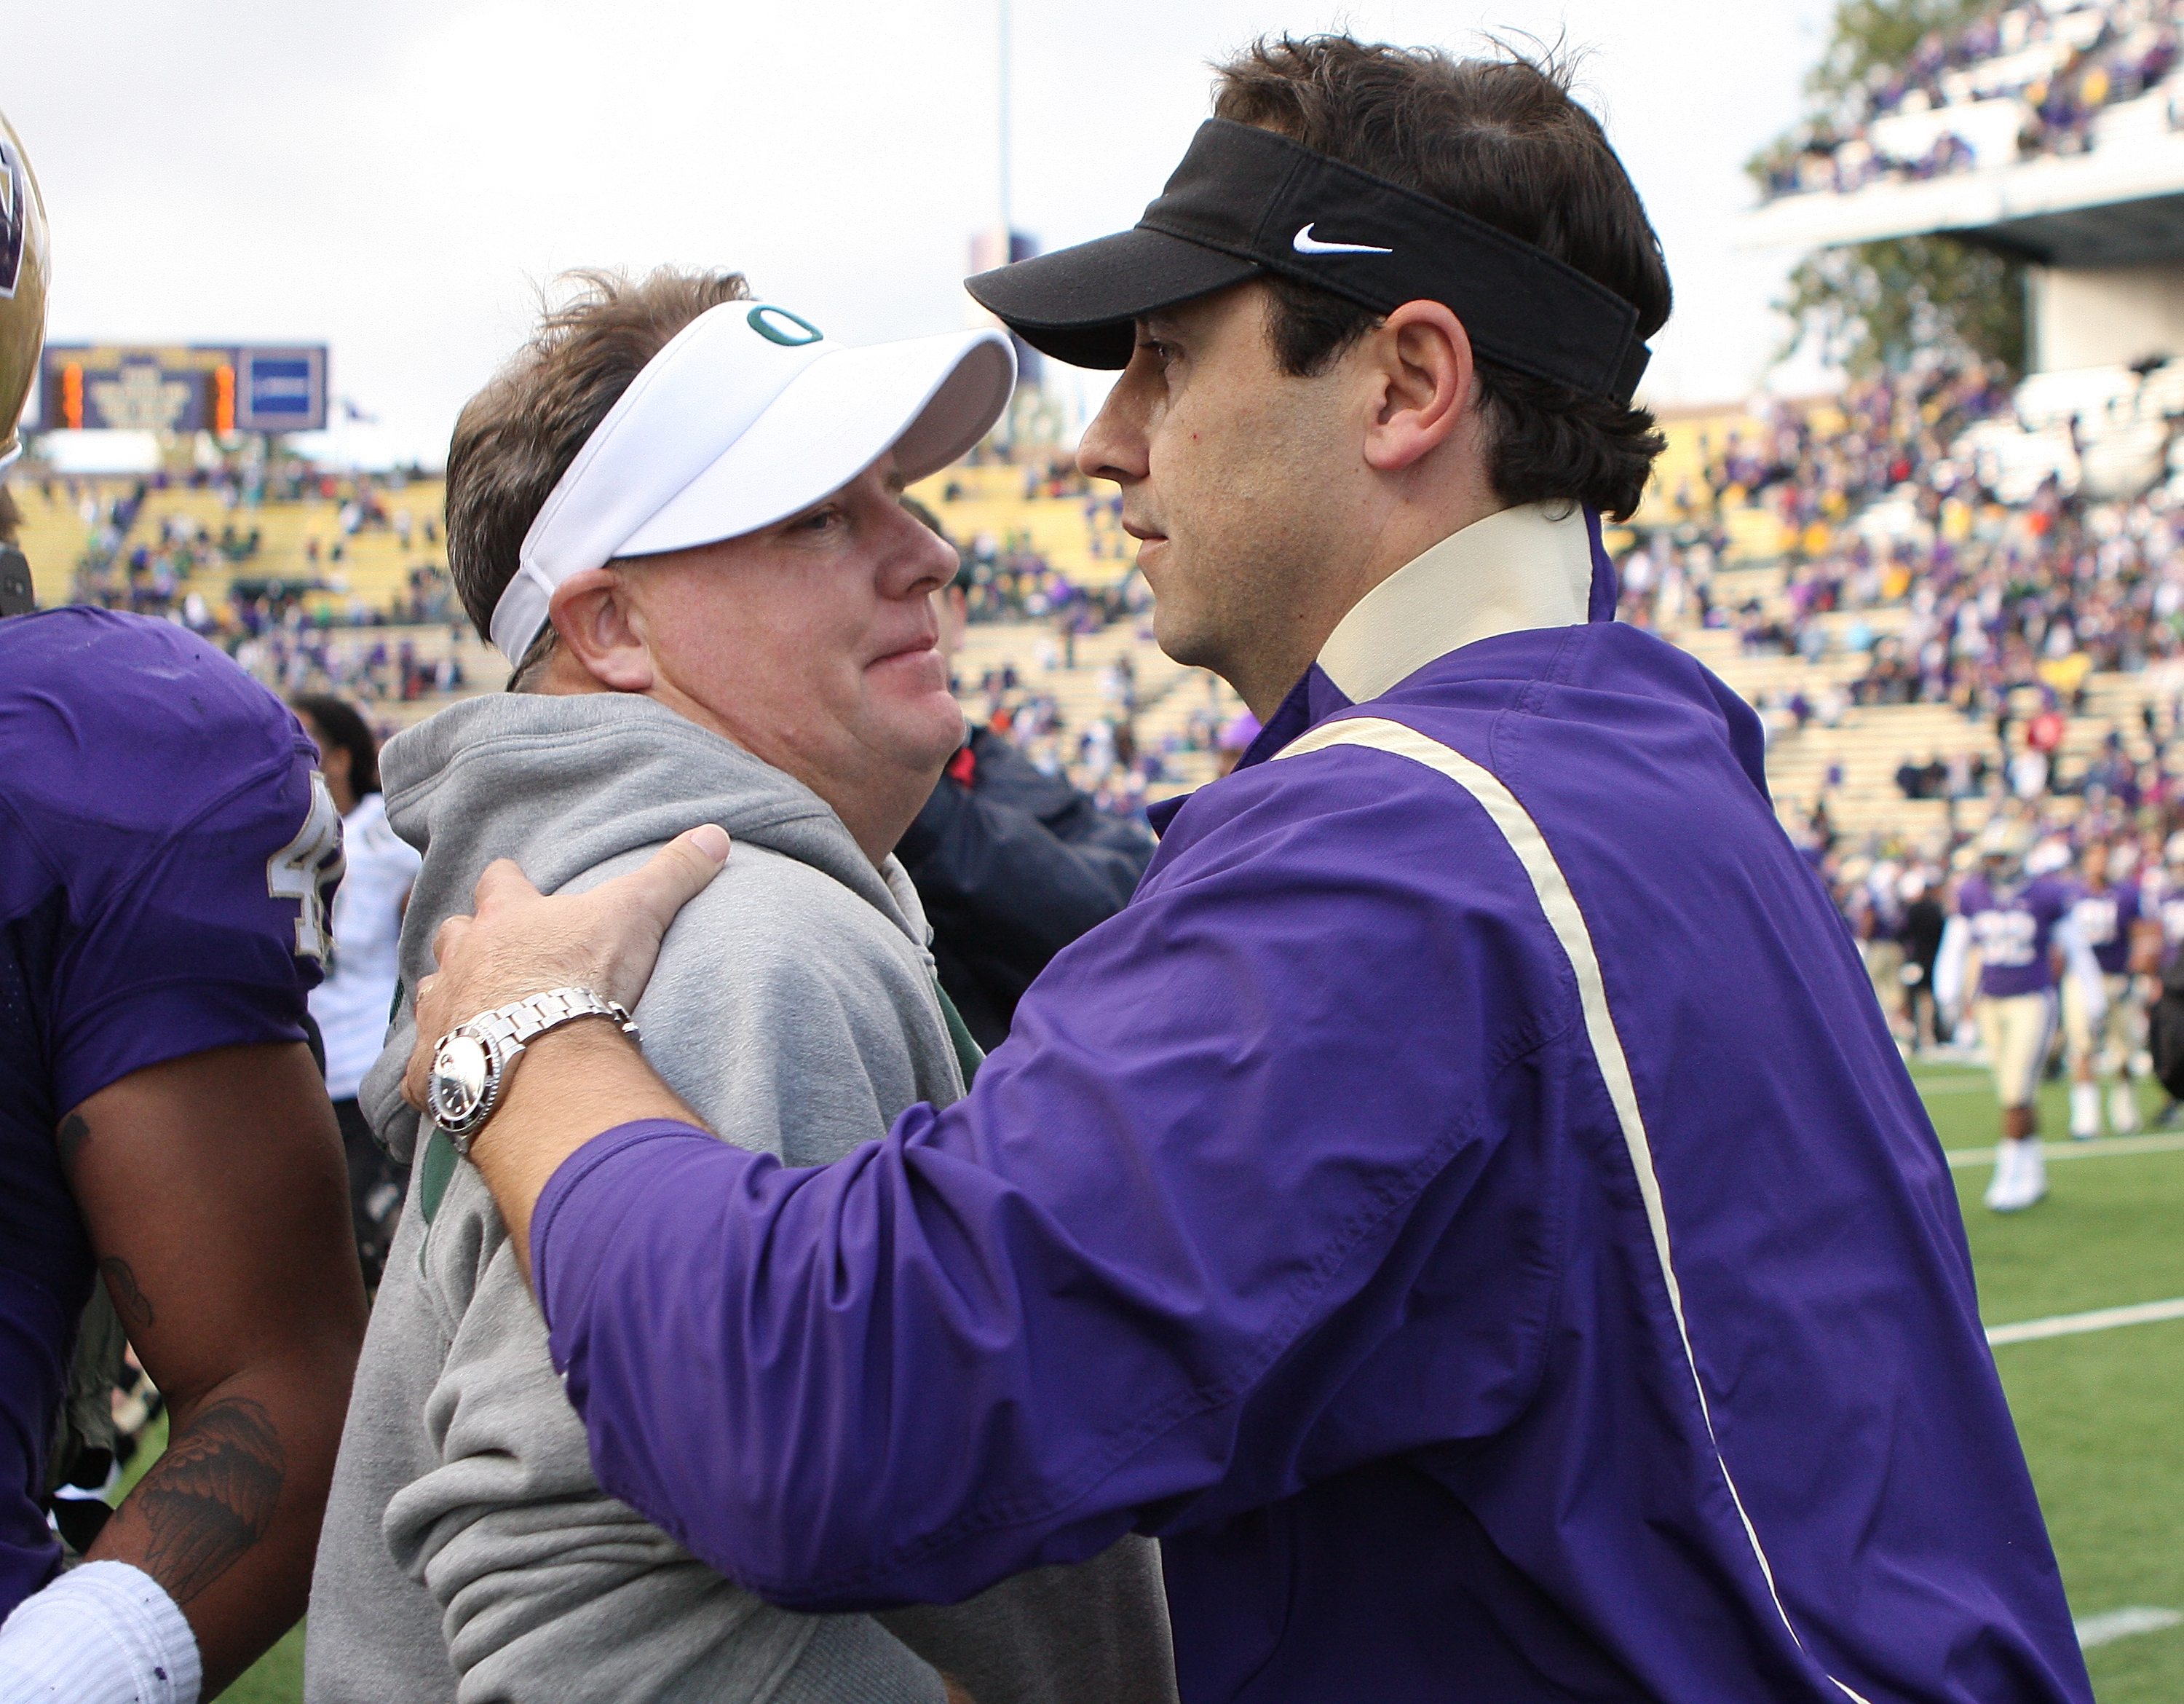 SEATTLE - OCTOBER 24:  Head coach Steve Sarkisian (R) of the Washington Huskies congratulates head coach Chip Kelly of the Oregon Ducks after the game on October 24, 2009 at Husky Stadium in Seattle, Washington. The Ducks defeated the Huskies 43-19. (Phot